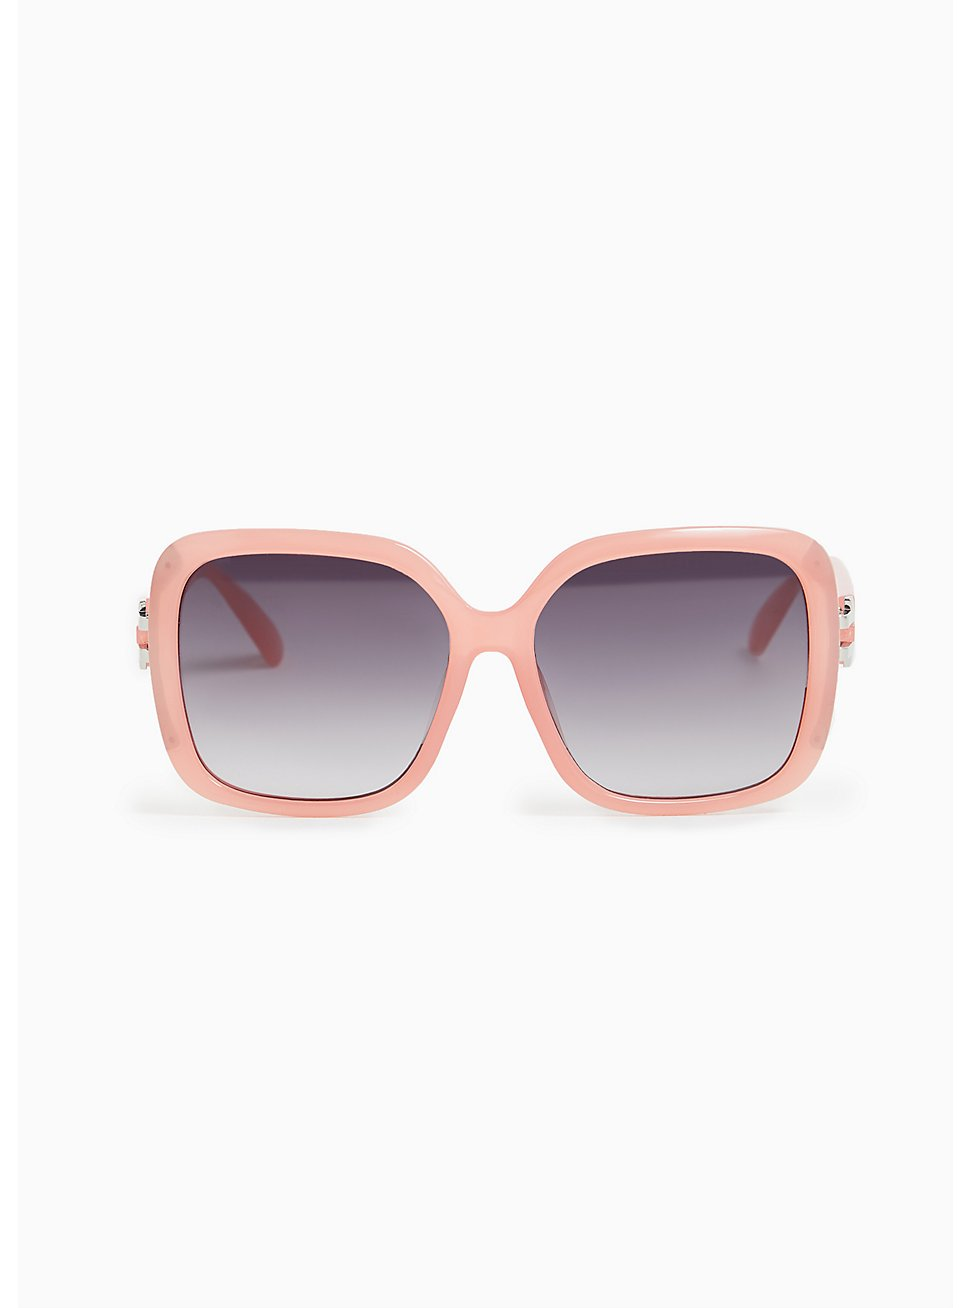 Pink Oversize Square Sunglasses, , hi-res